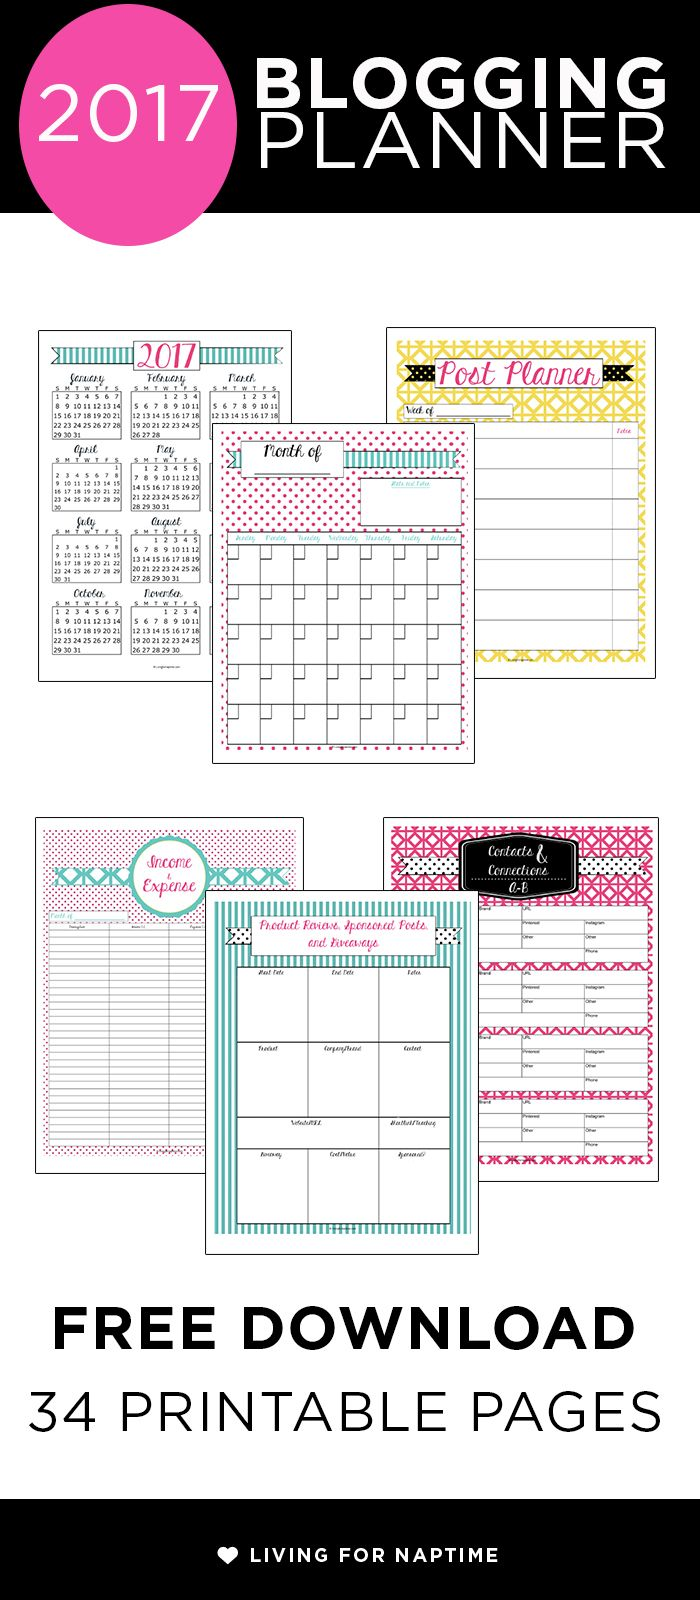 Download this free printable 2017 Blogging Planner and get organized with goal worksheets, content calendars and post planning sheets.